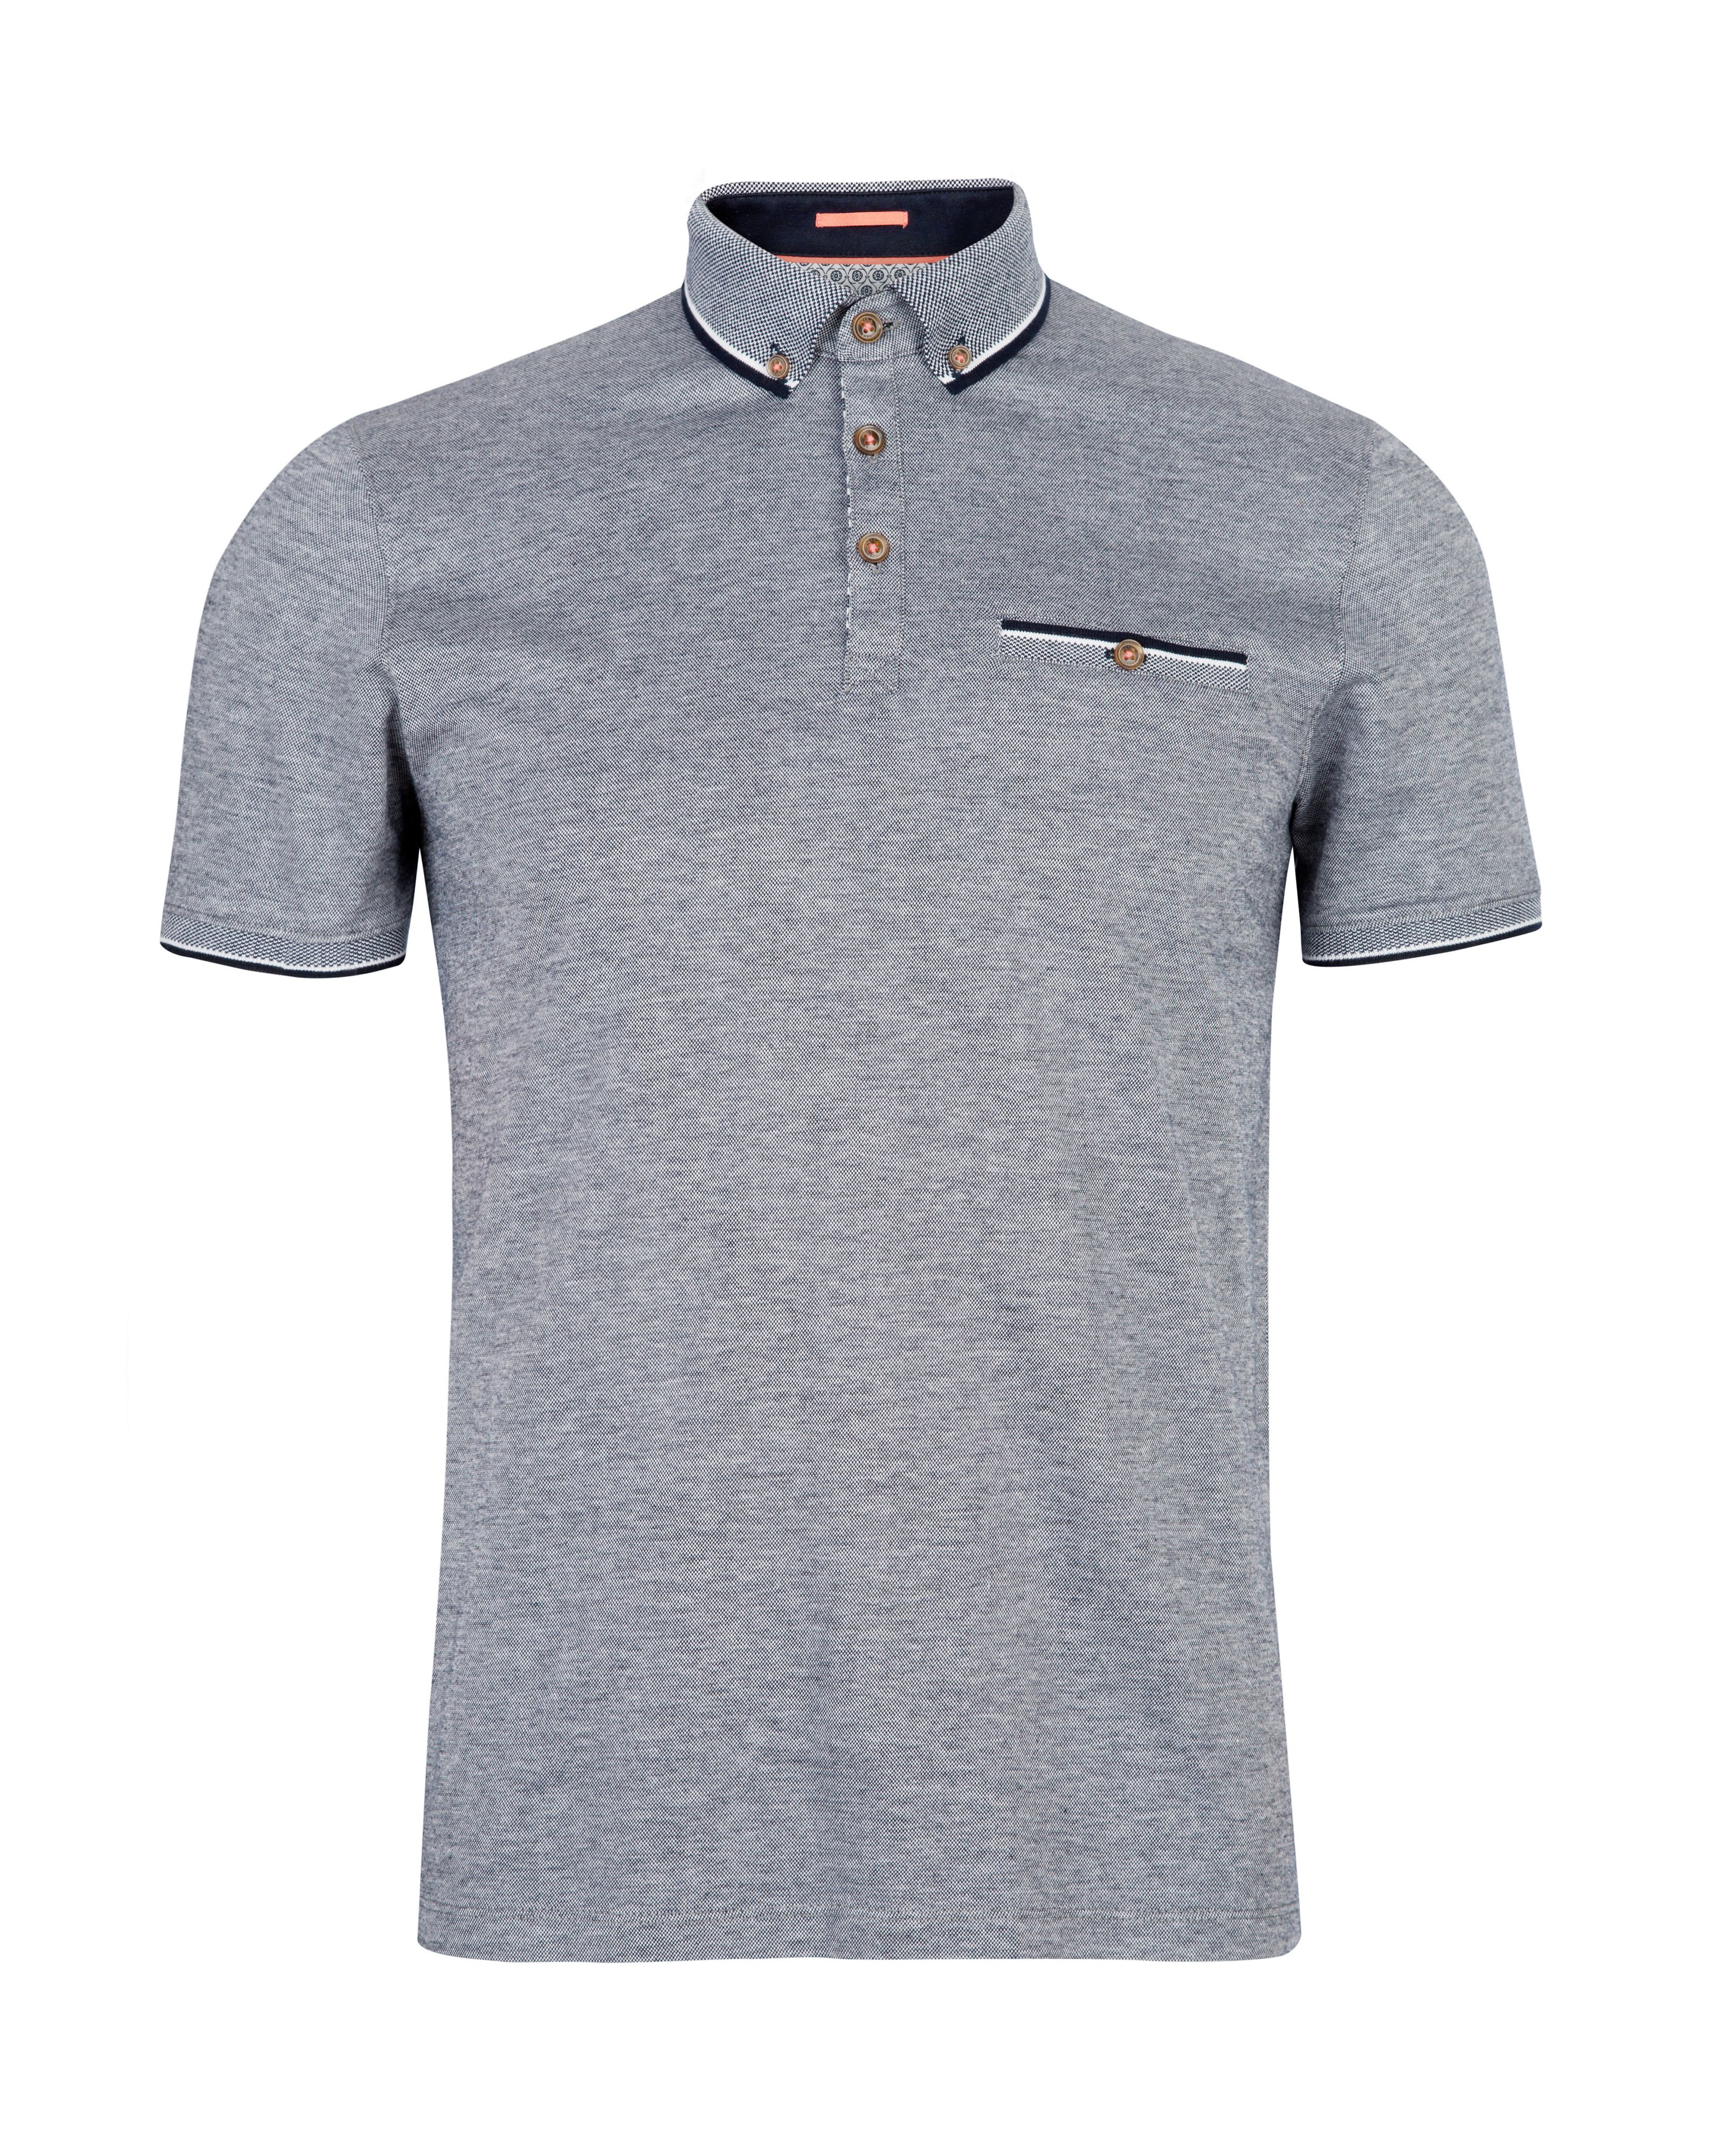 Ashland contrast collar polo shirt